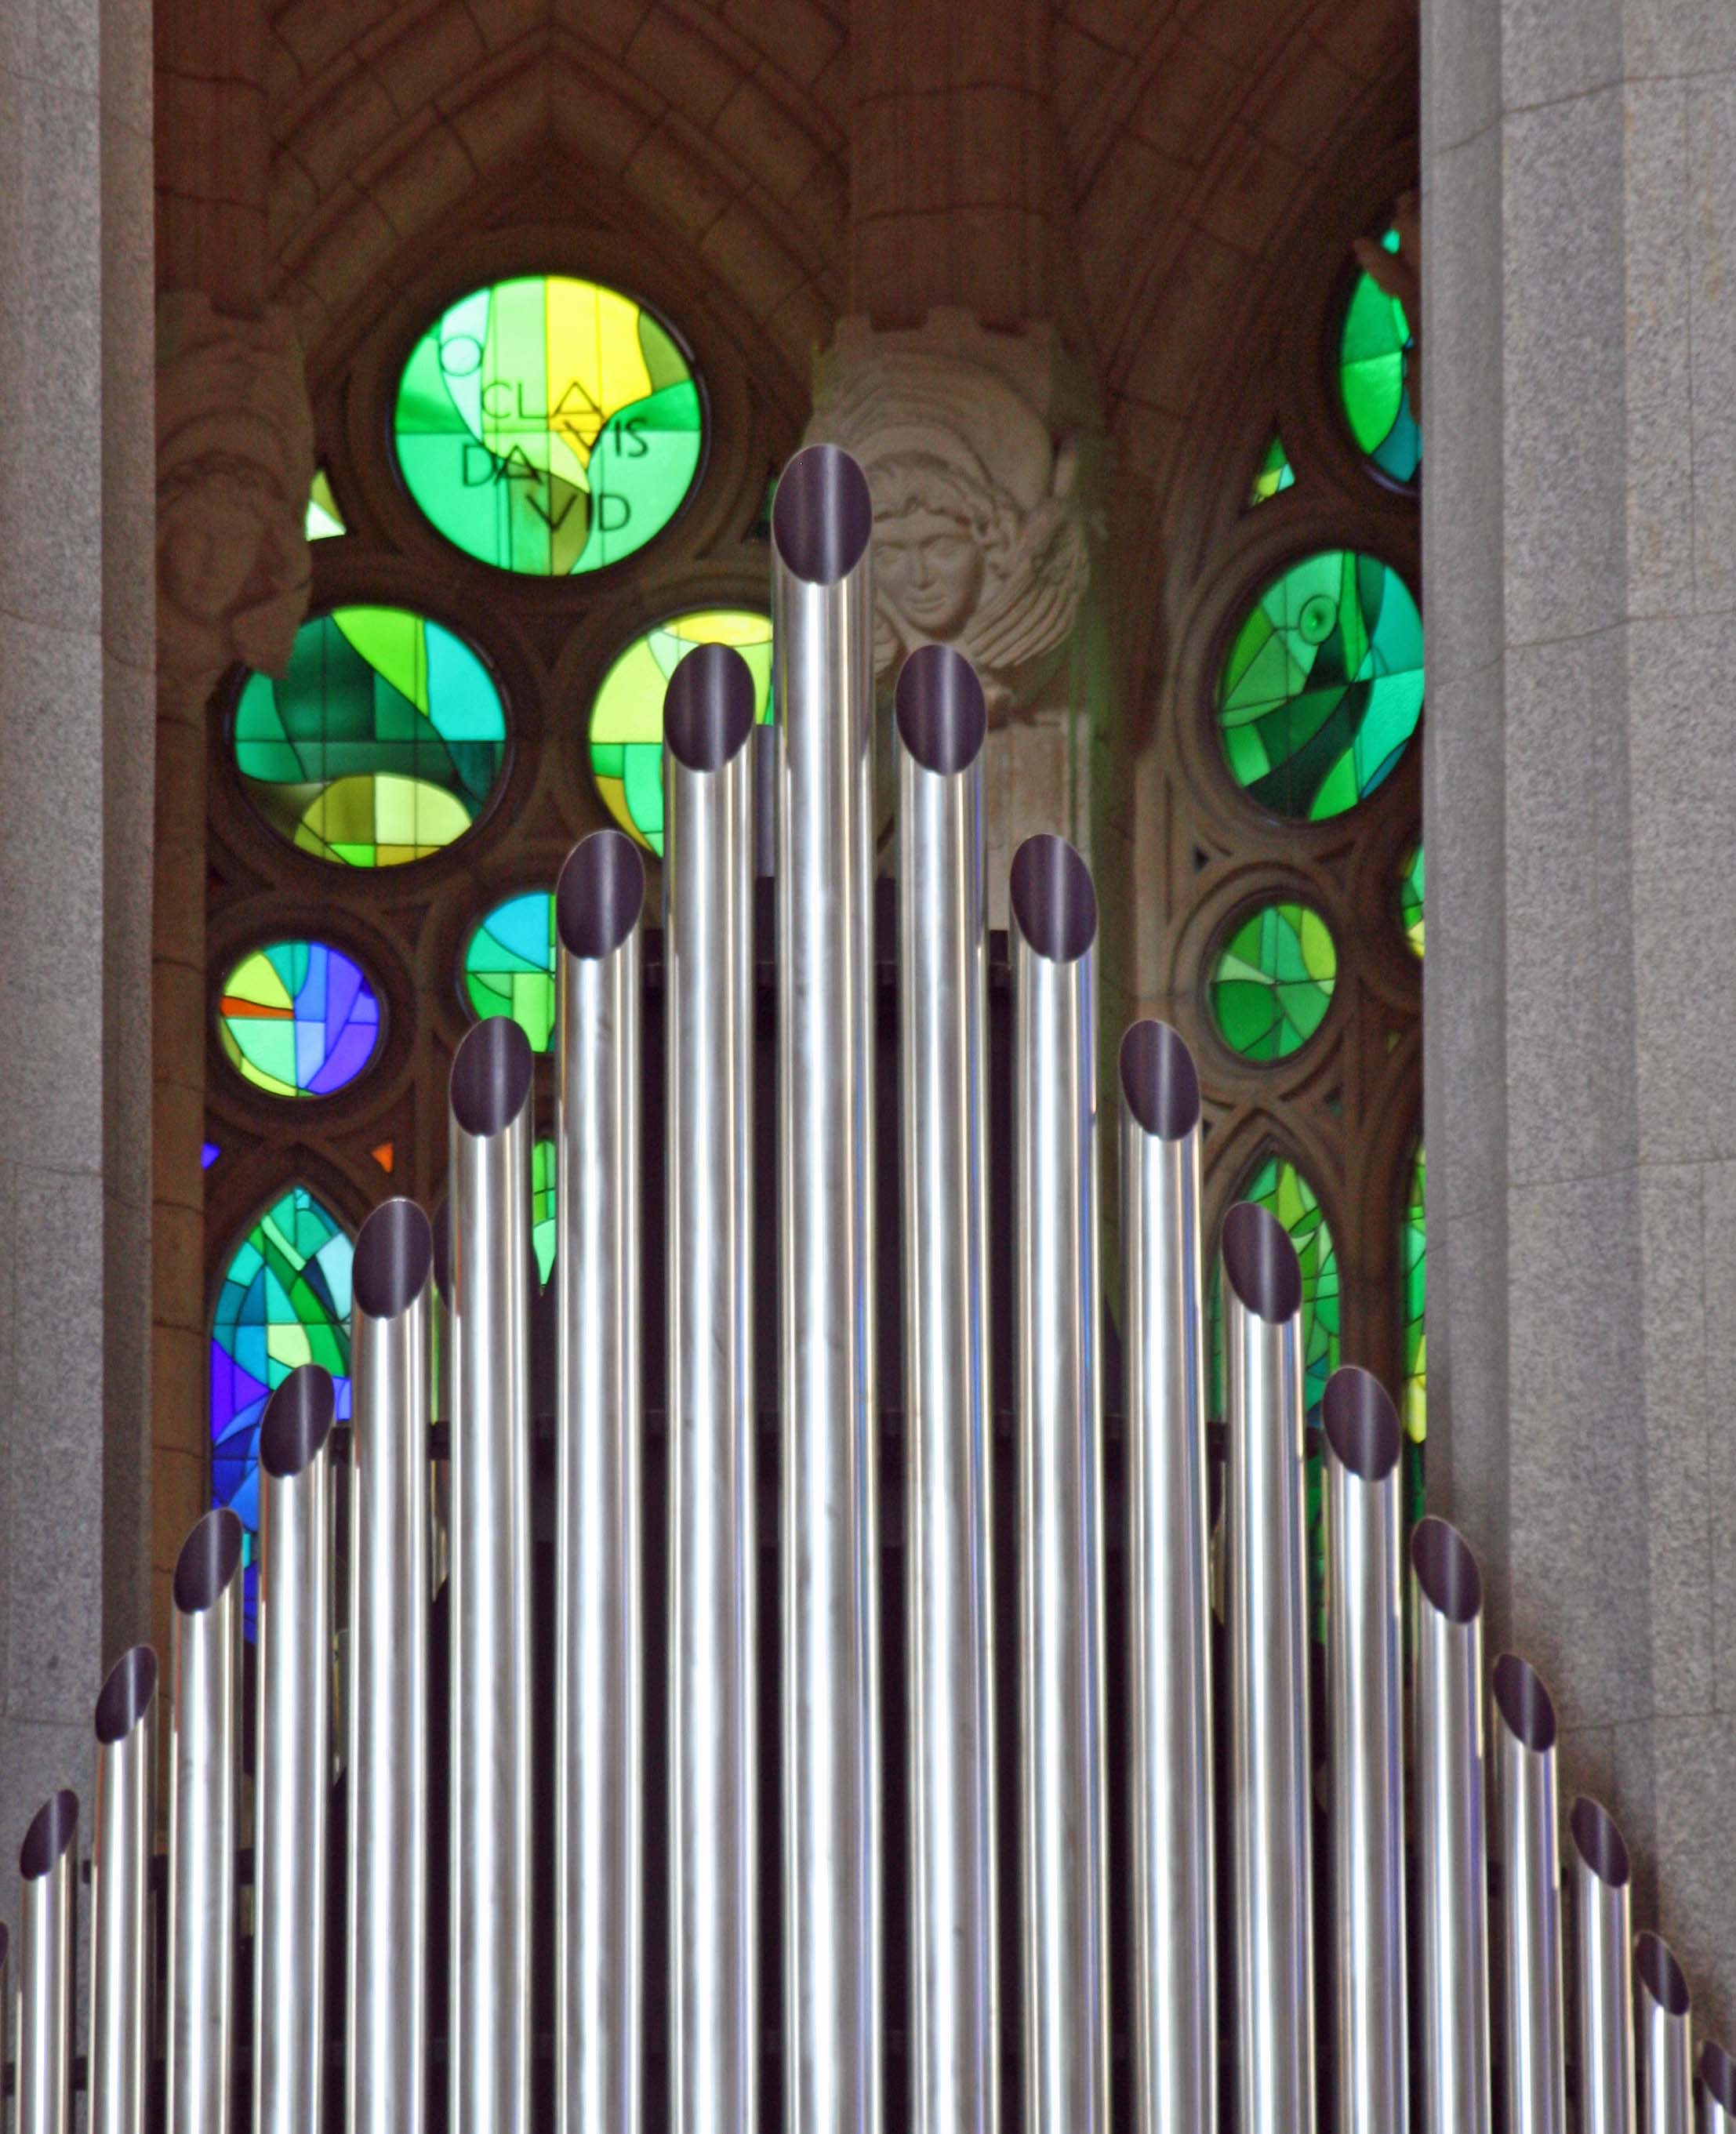 Organ pipes in Sagrada Familia